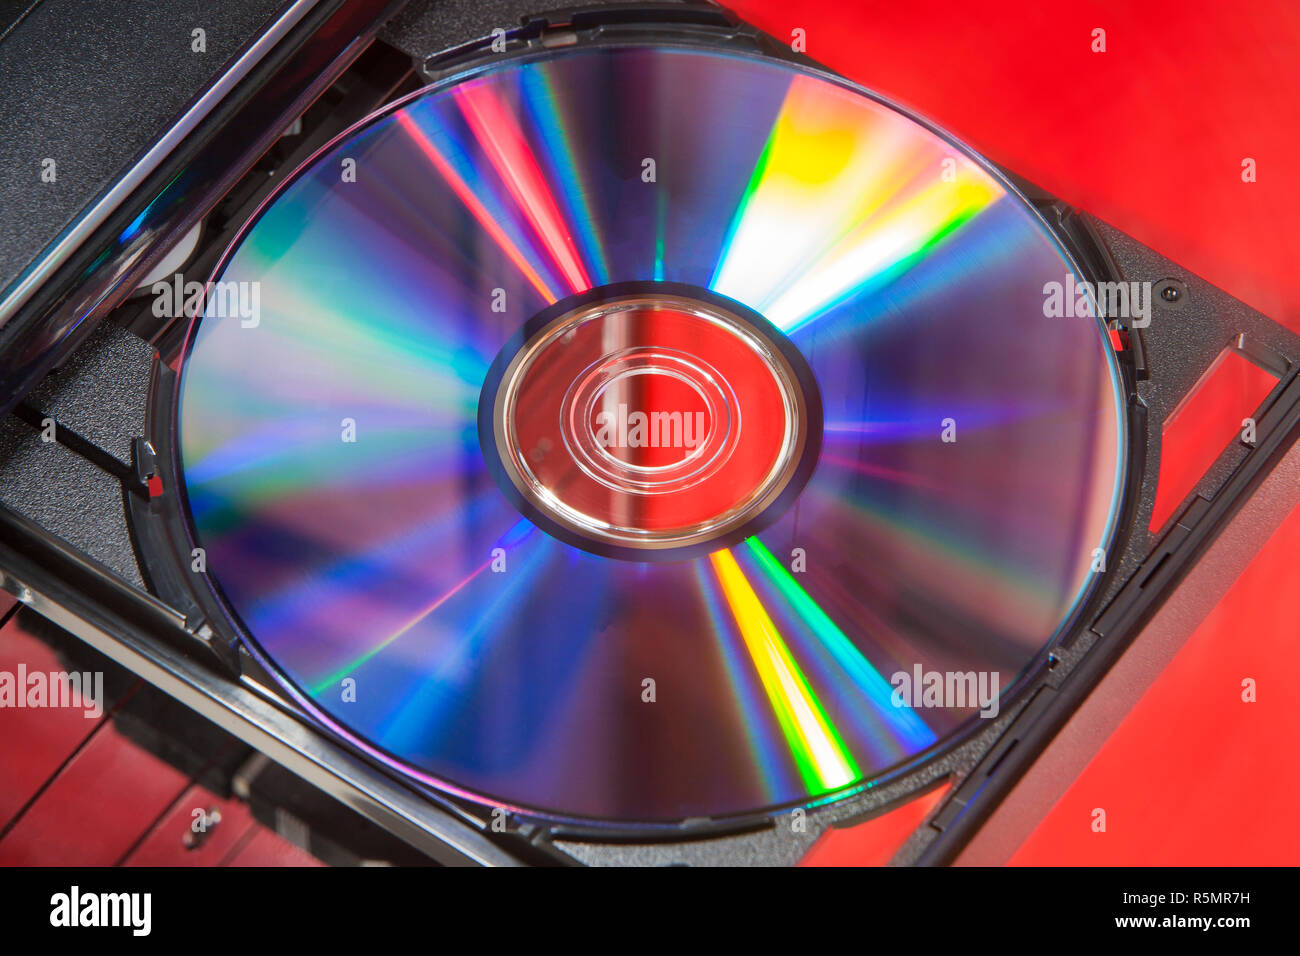 DVD disc in player - Stock Image